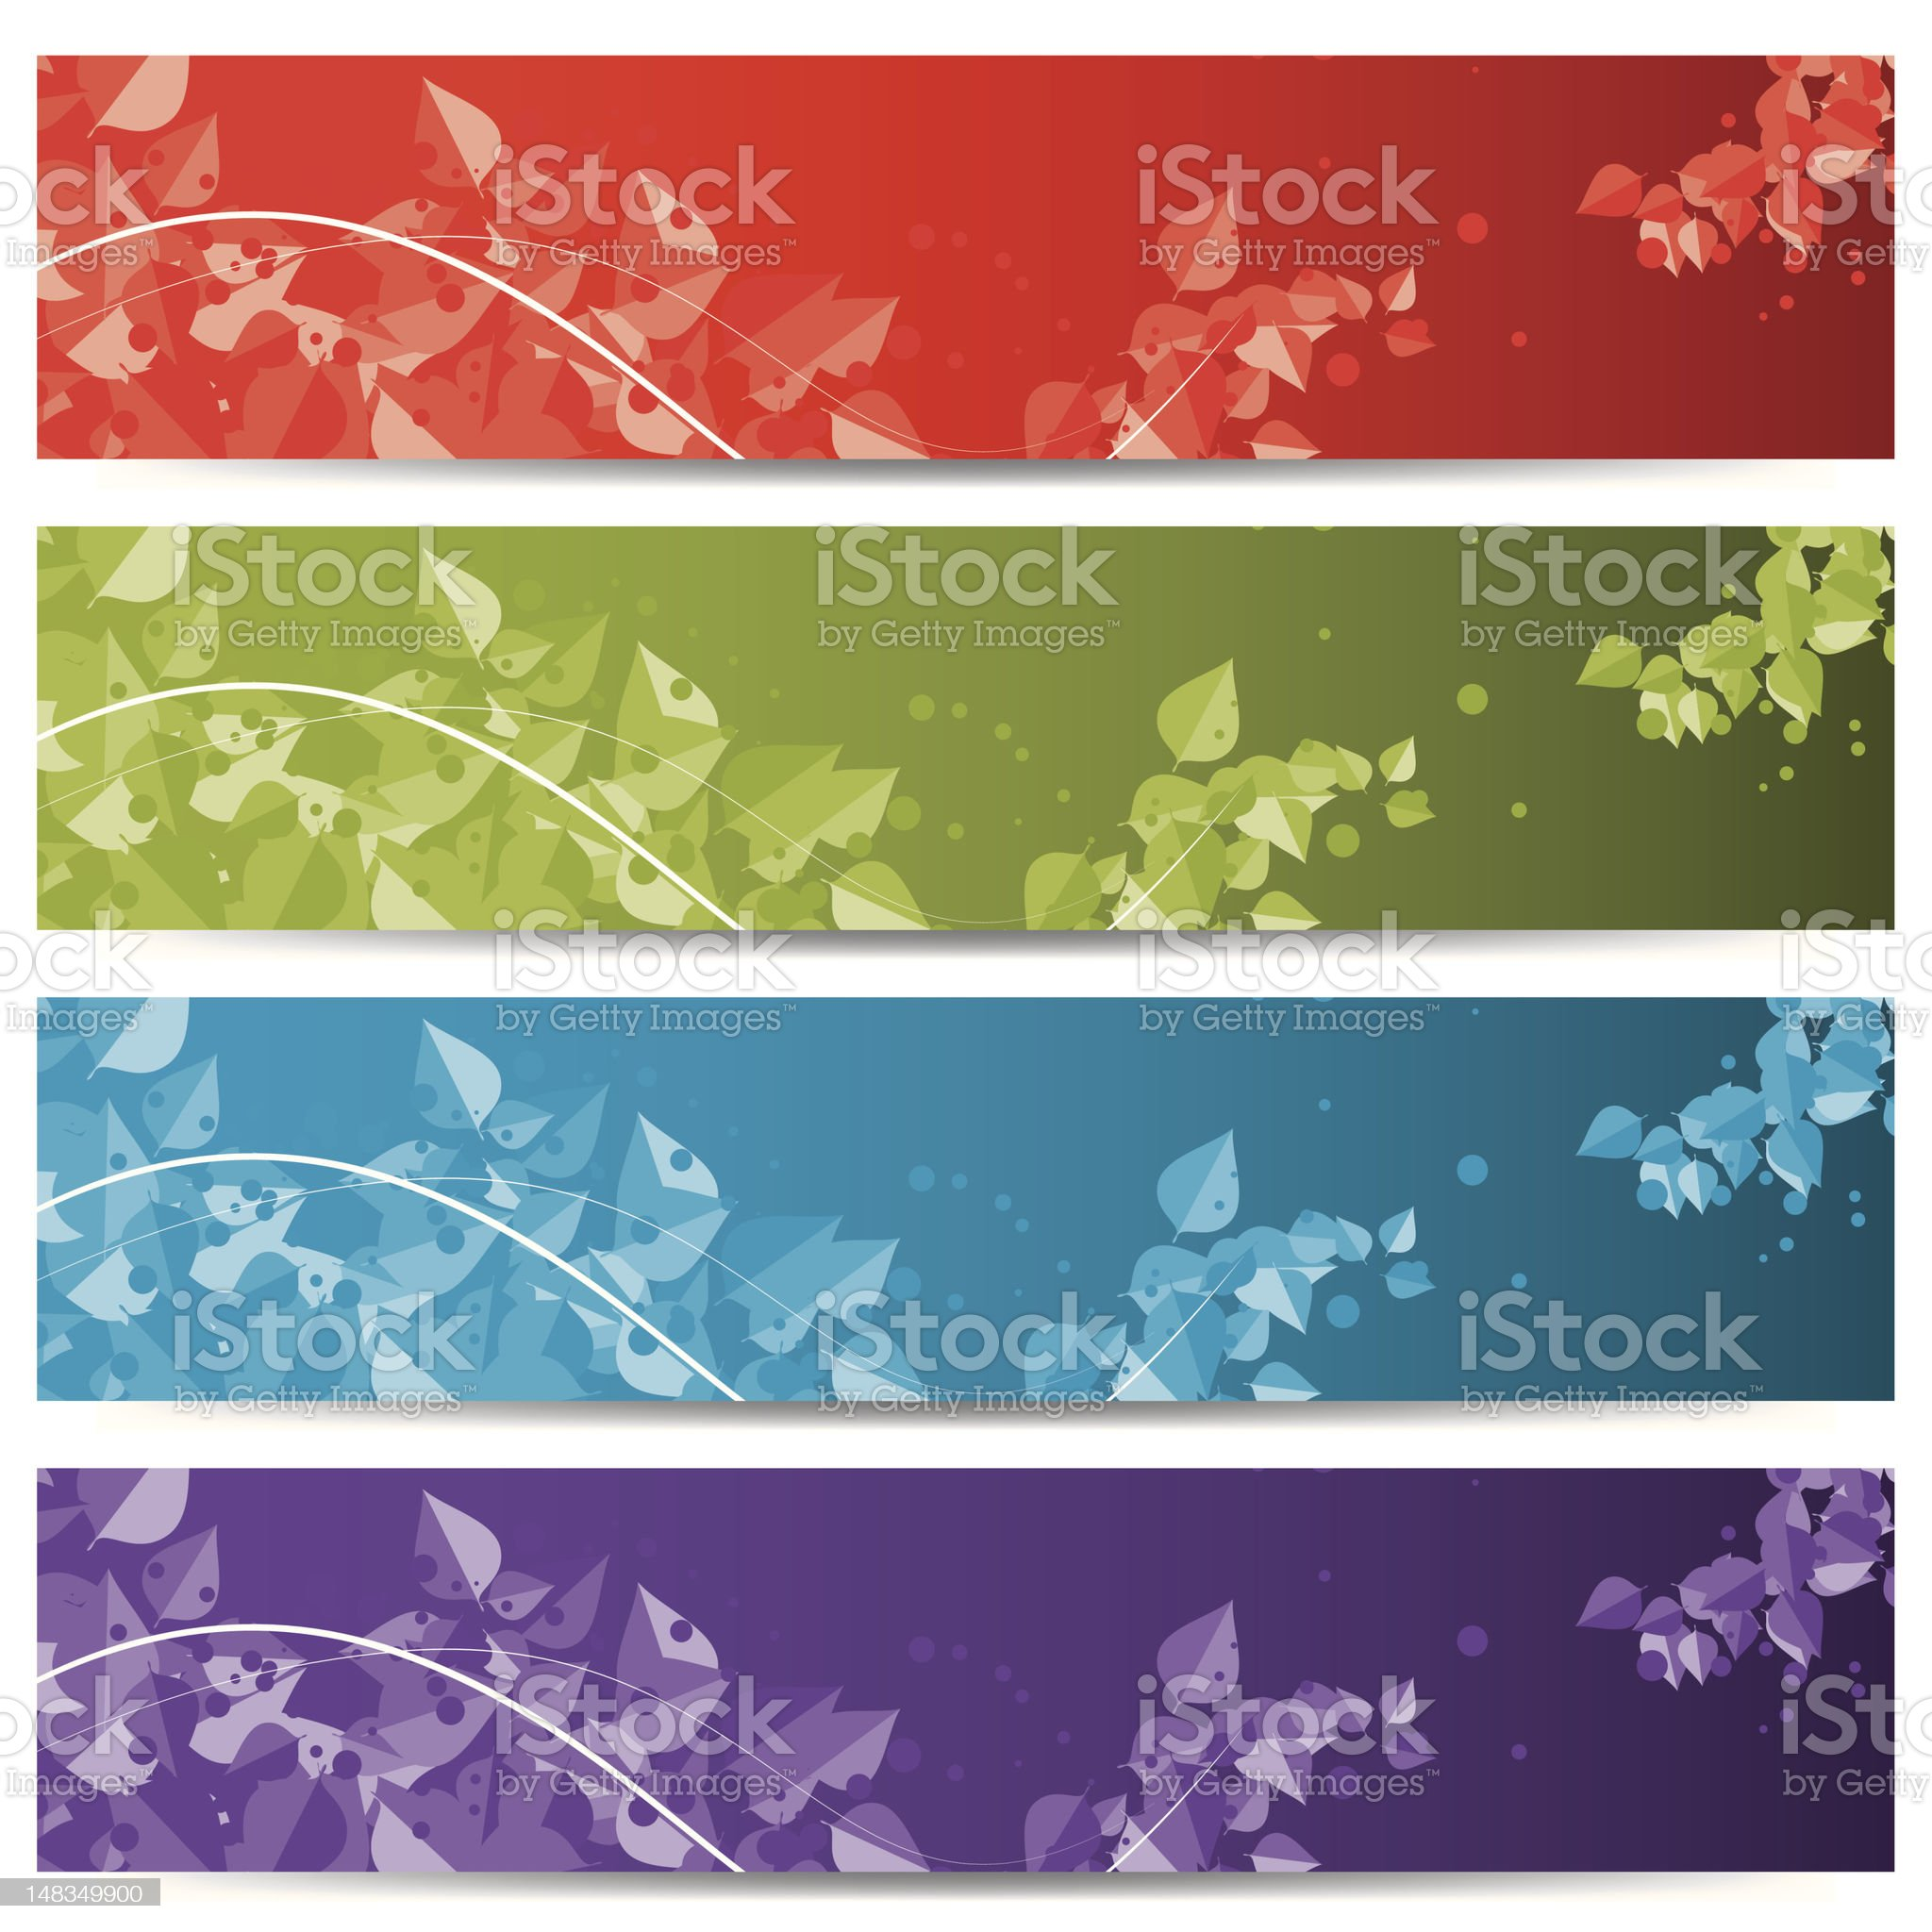 abstract web headers/banners royalty-free stock vector art